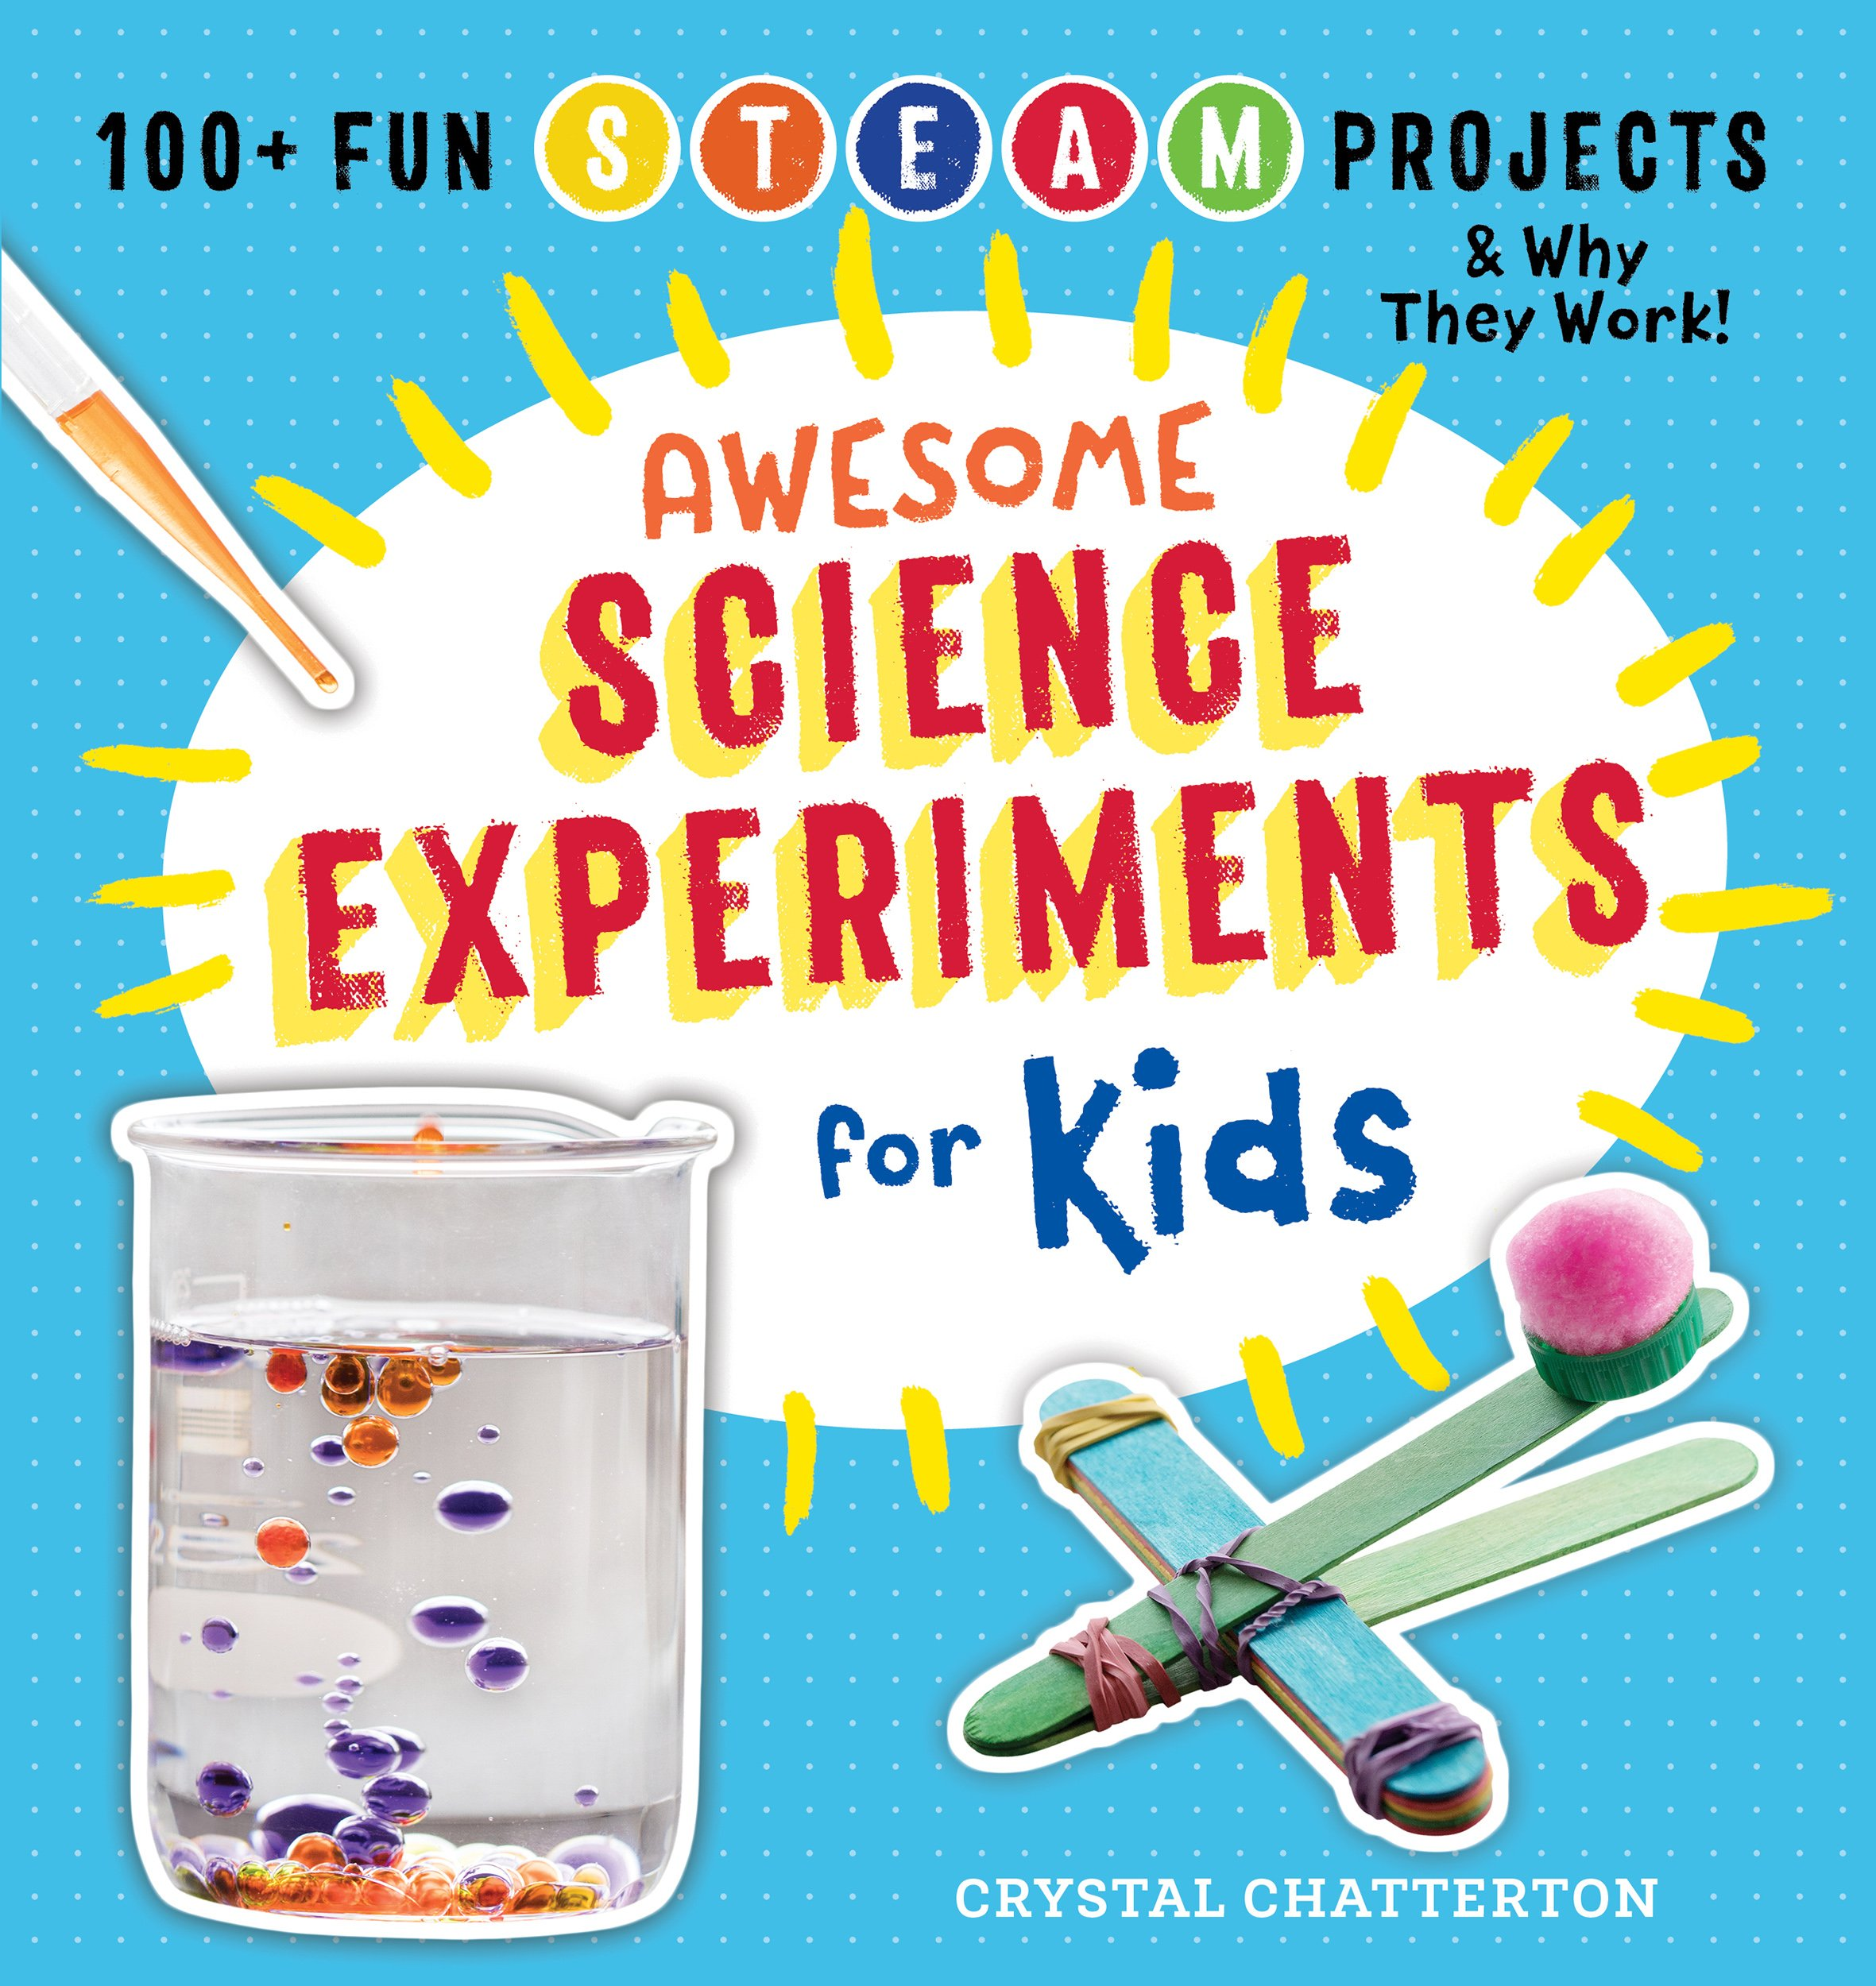 Awesome Science Experiments For Kids  100+ Fun STEM   STEAM Projects And Why They Work  English Edition